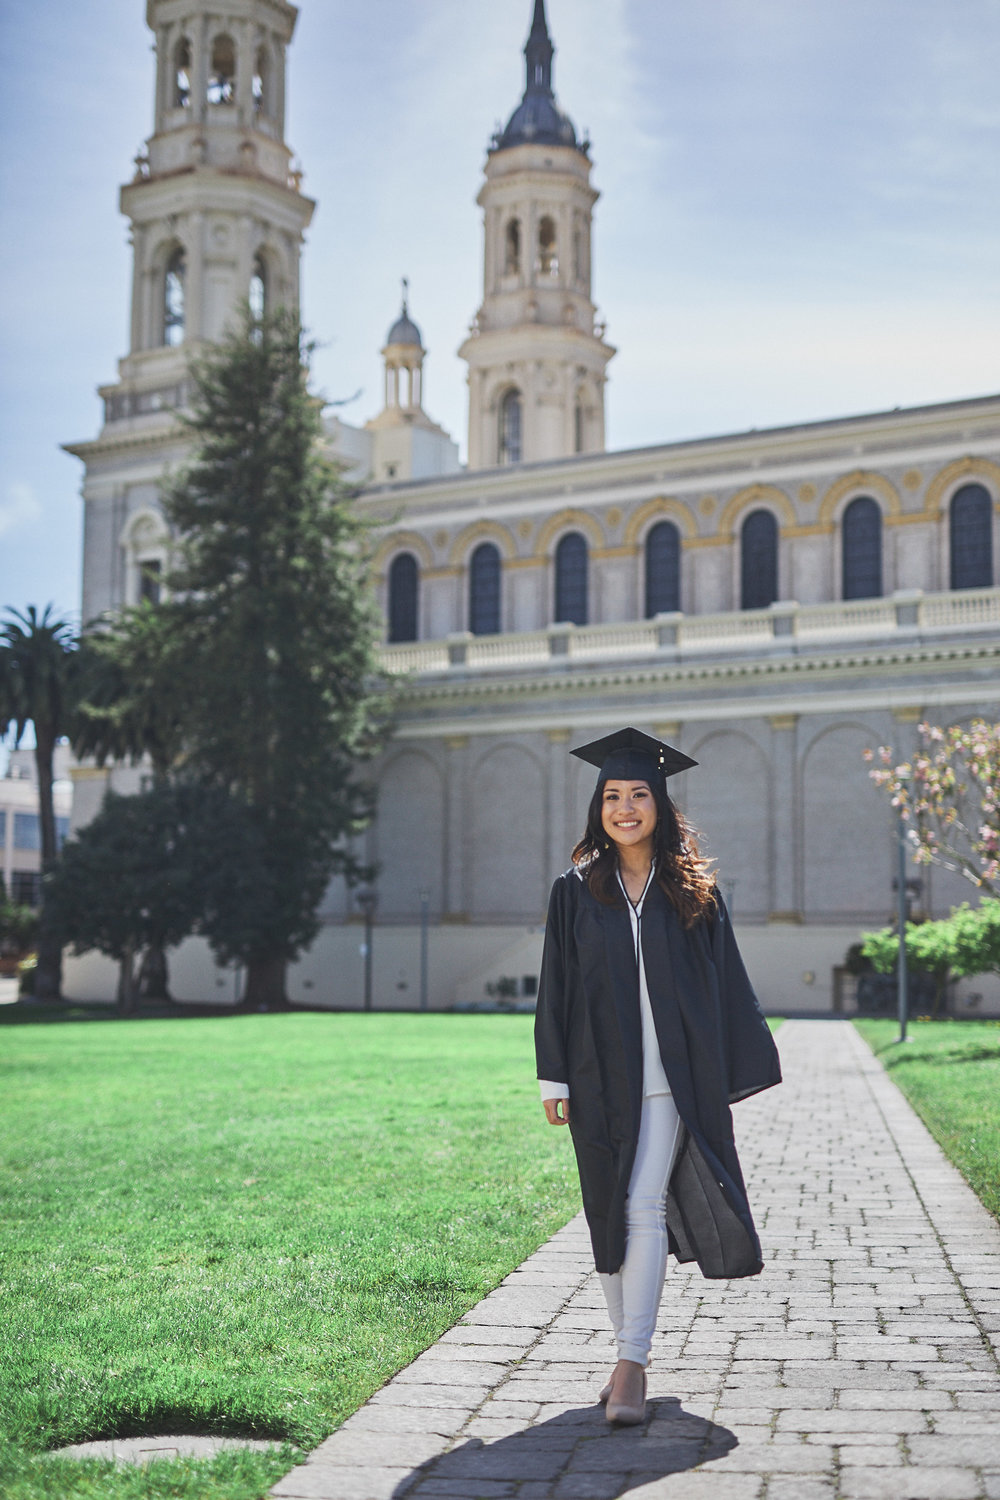 Elyssa May Graduation Photoshoot at University of San Francisco